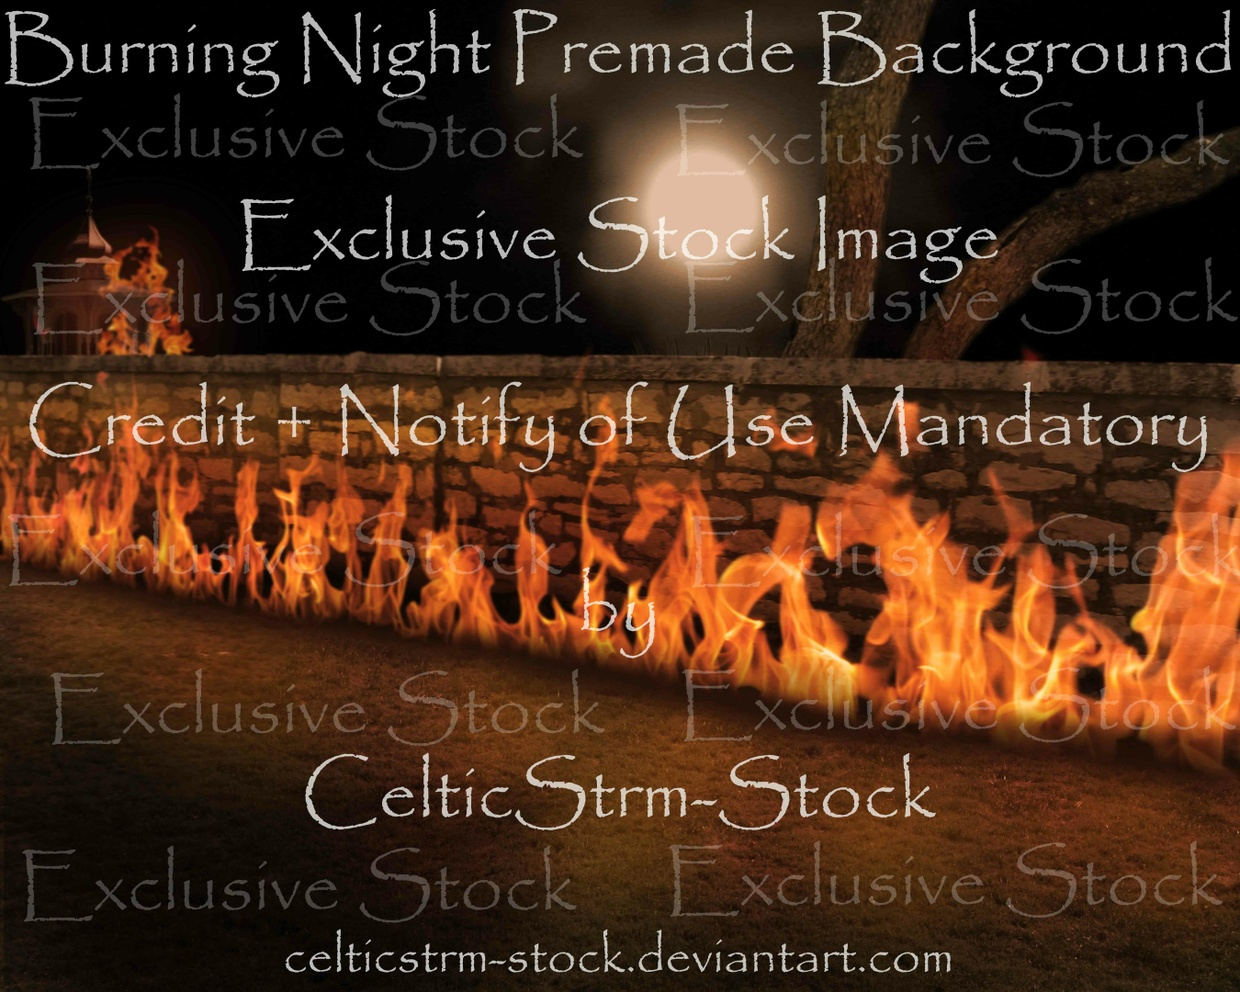 Burning Nights Premade Background